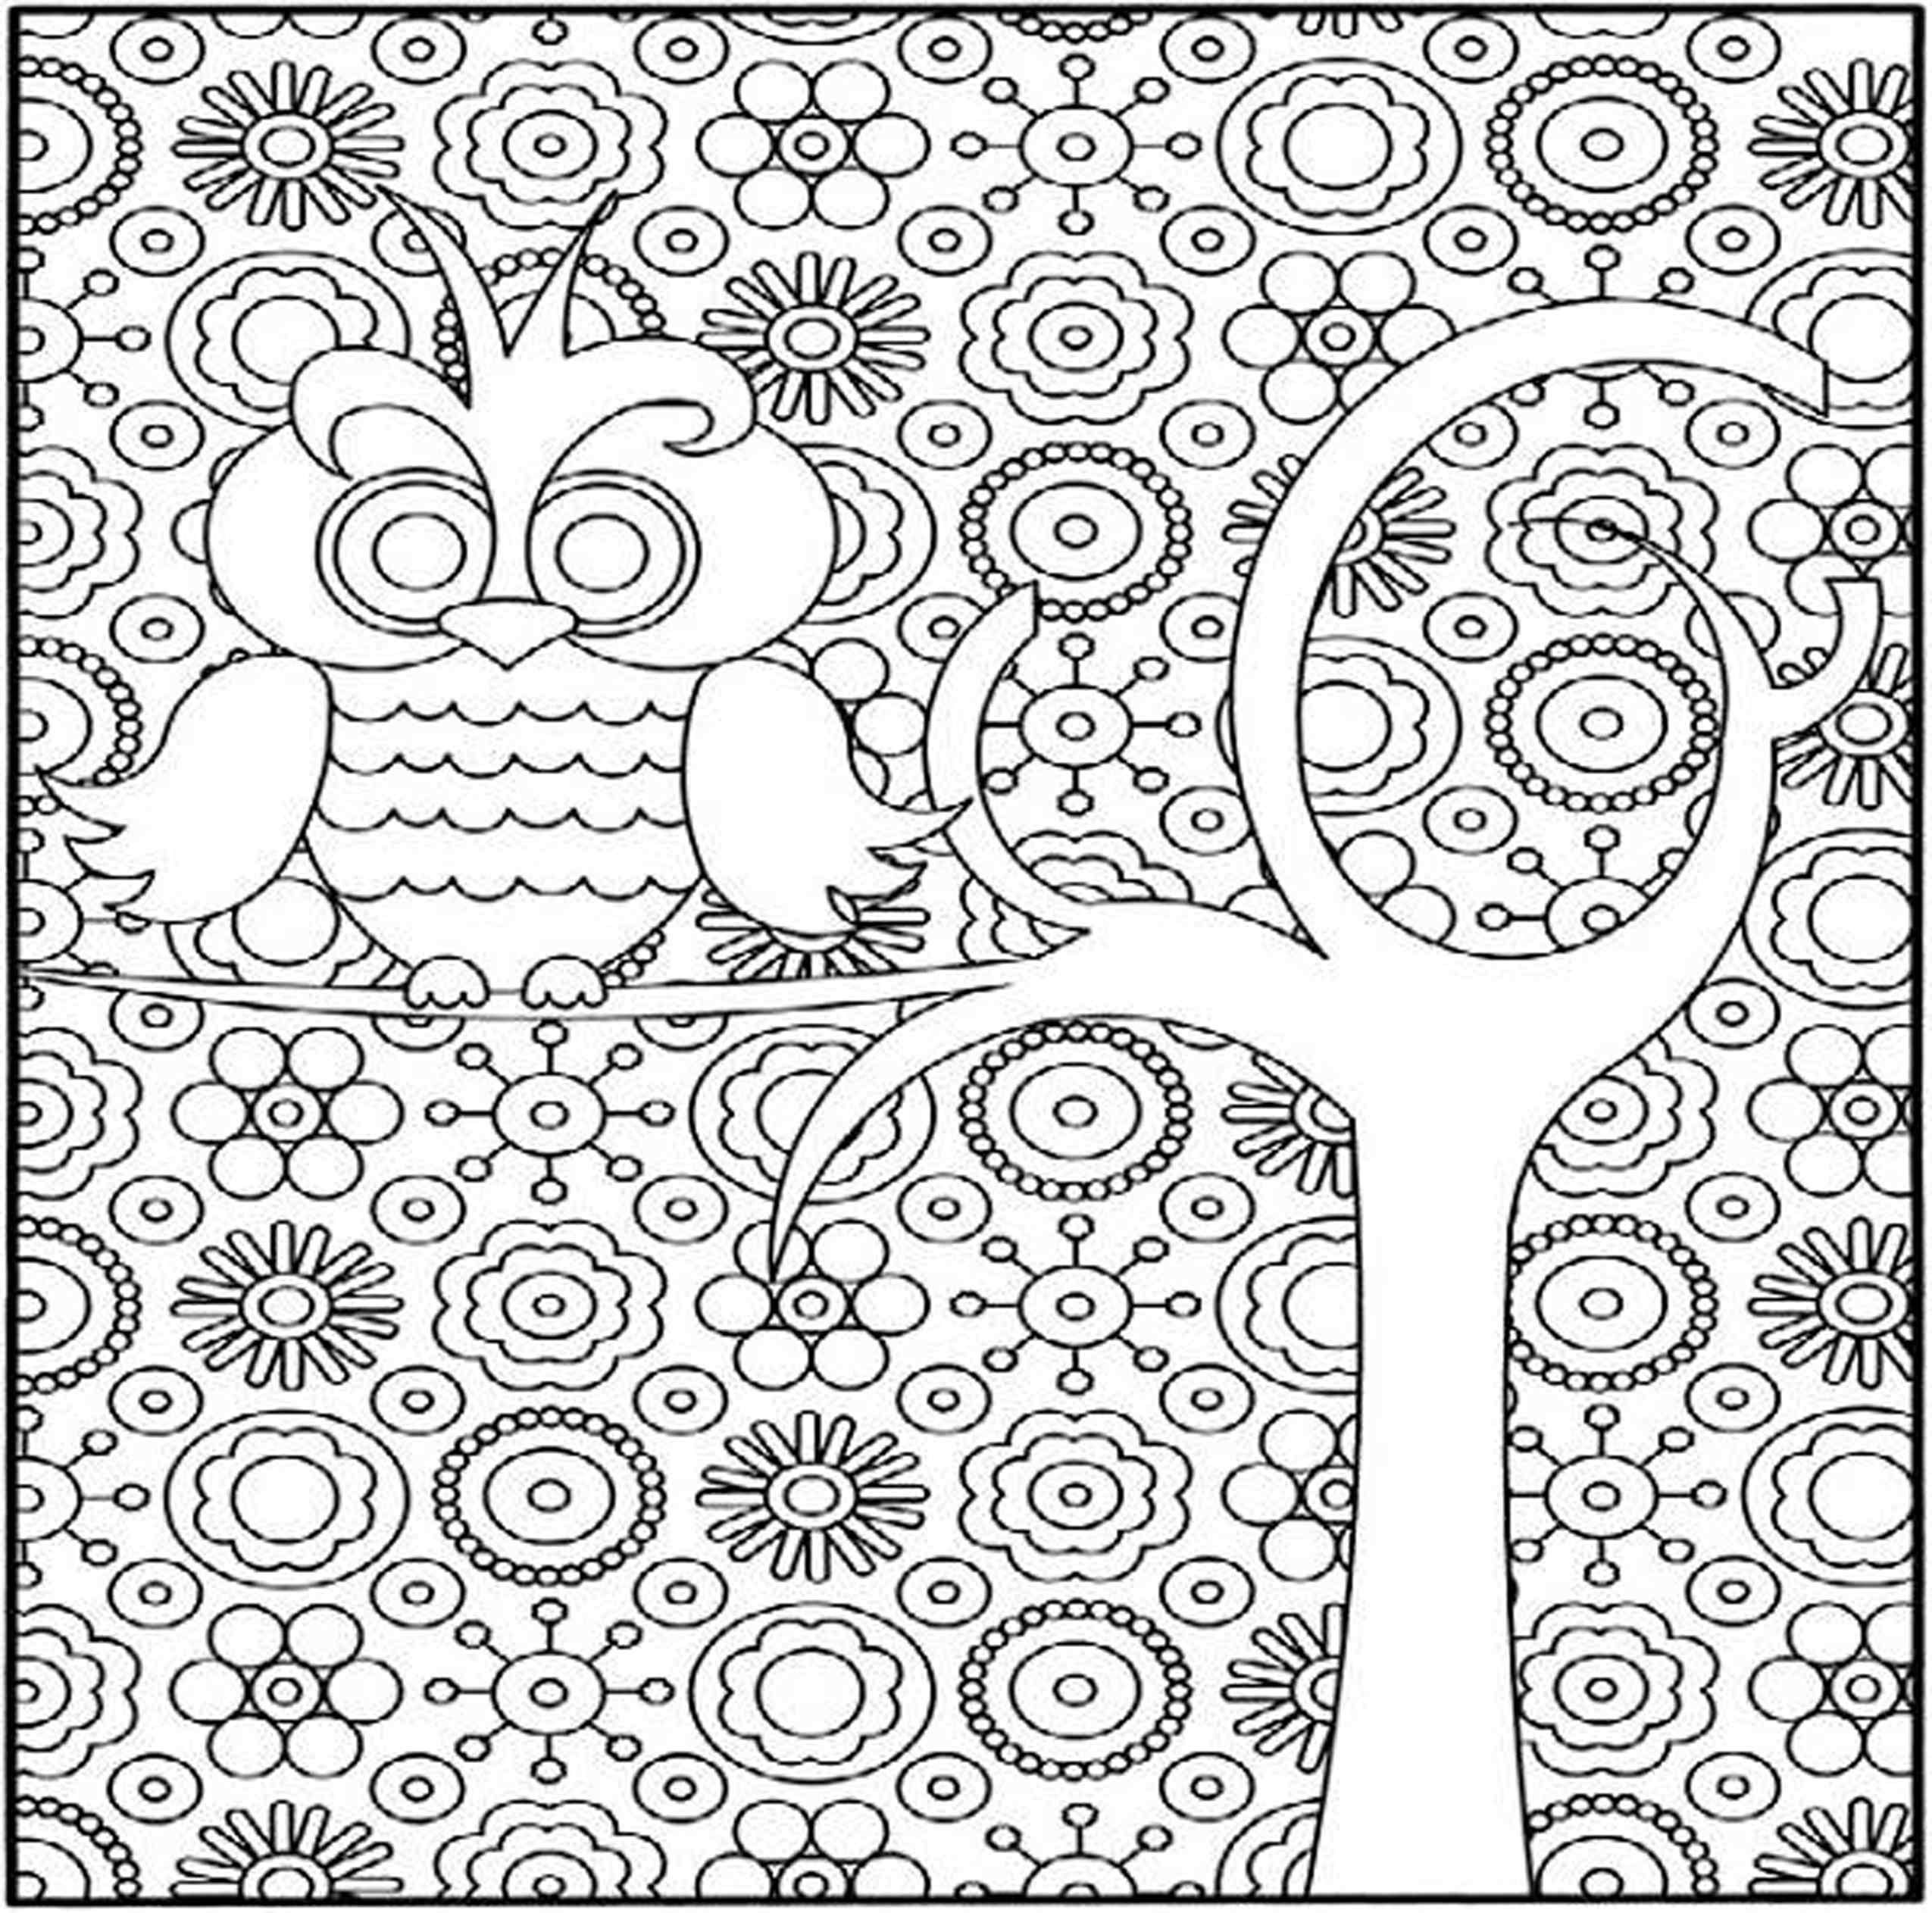 Free Coloring Pages Of Difficult Patterns